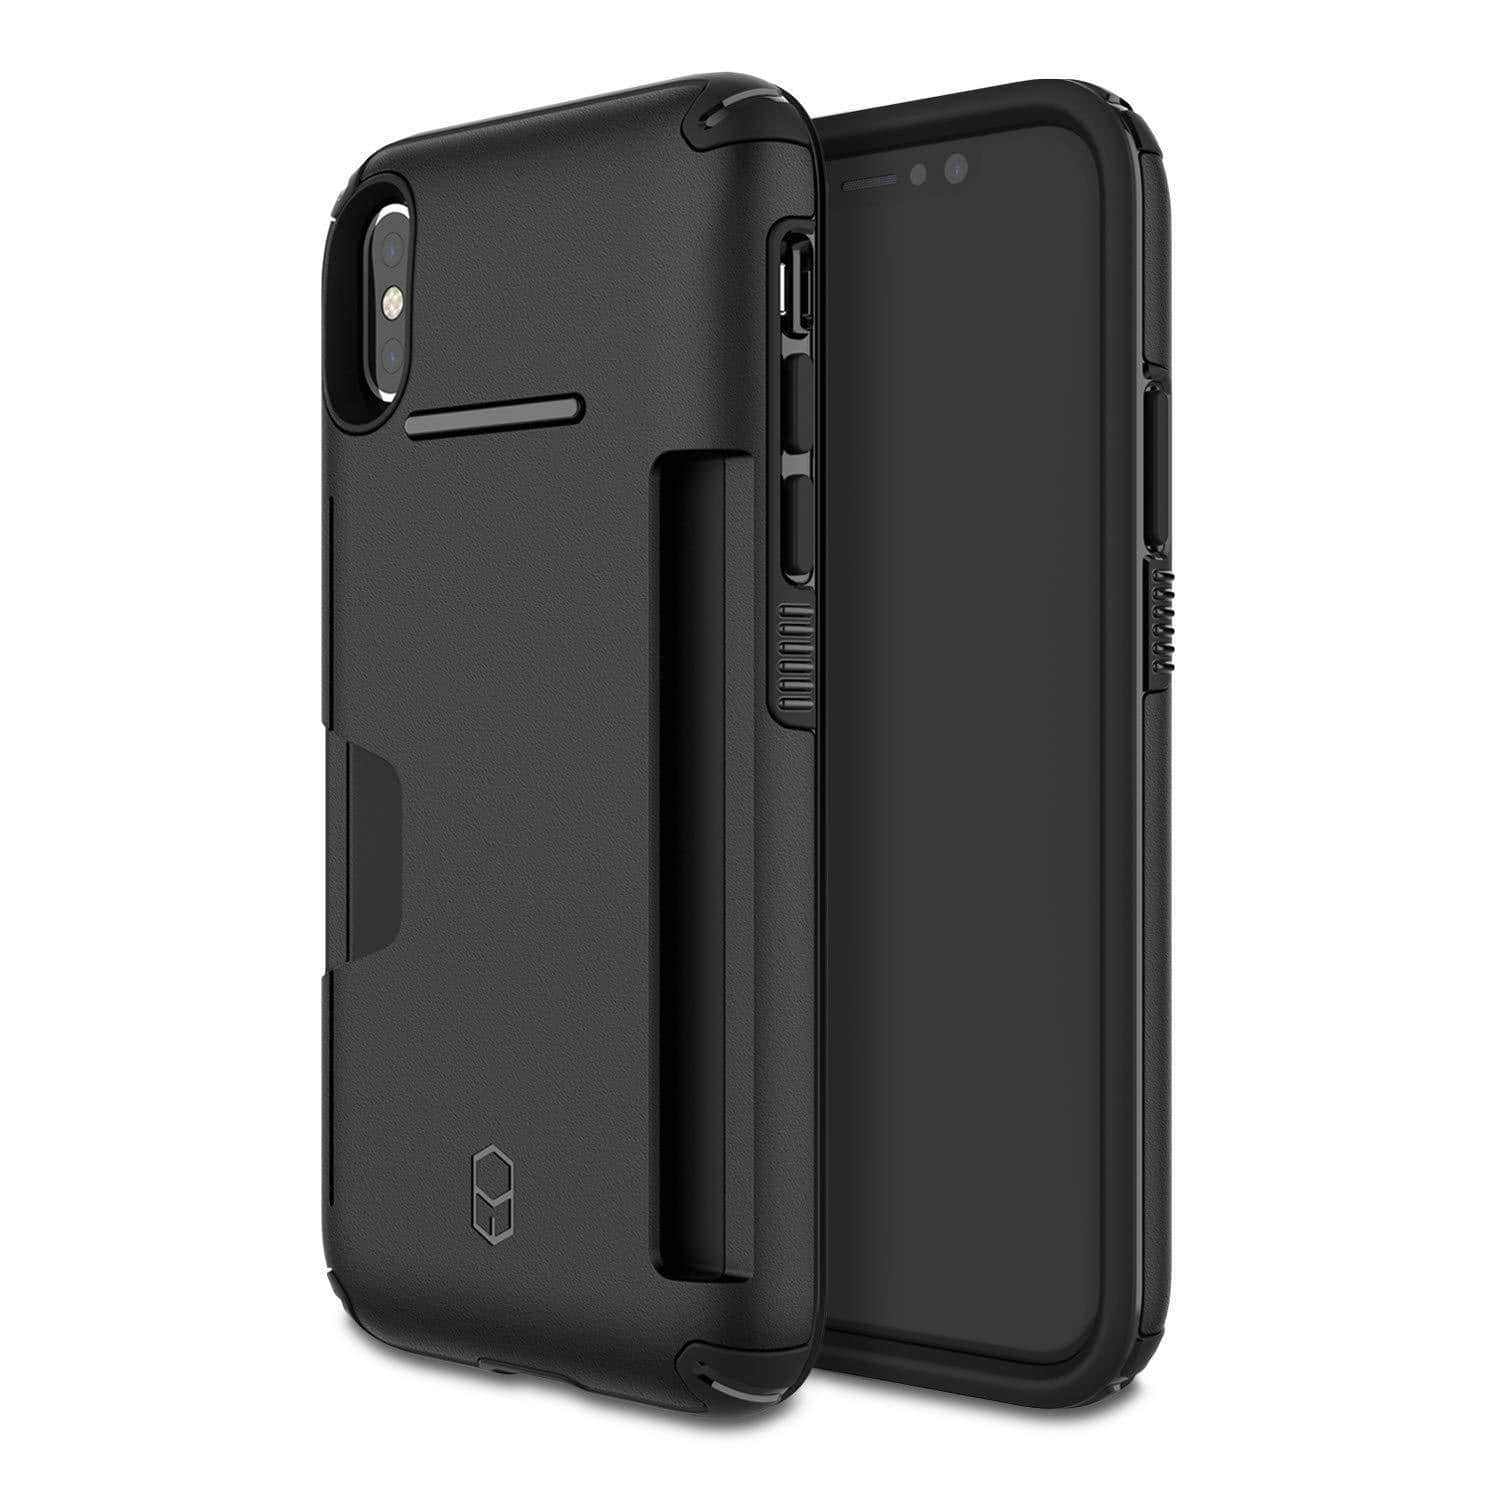 Patchworks Phone Cases for iPhone XS, XR, XS Max - $5.88 + Free Shipping